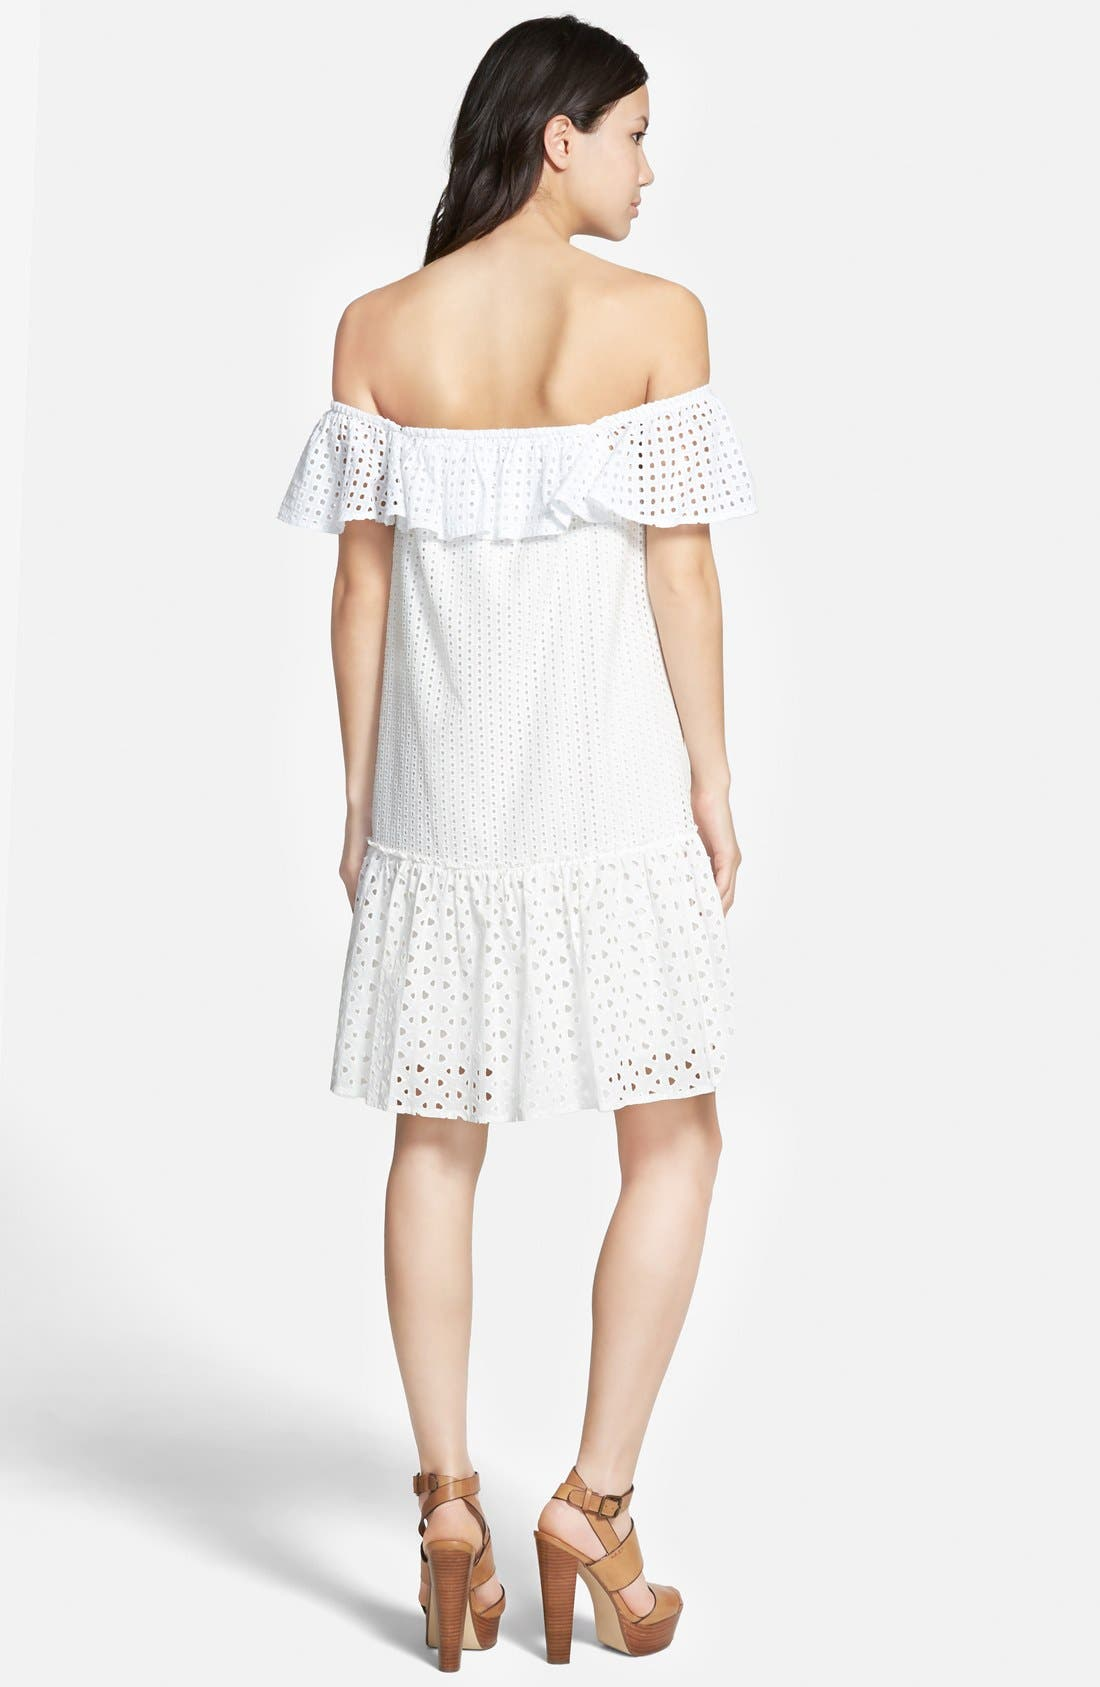 REBECCA MINKOFF,                             'Celestine' Off the Shoulder Dress,                             Alternate thumbnail 3, color,                             100